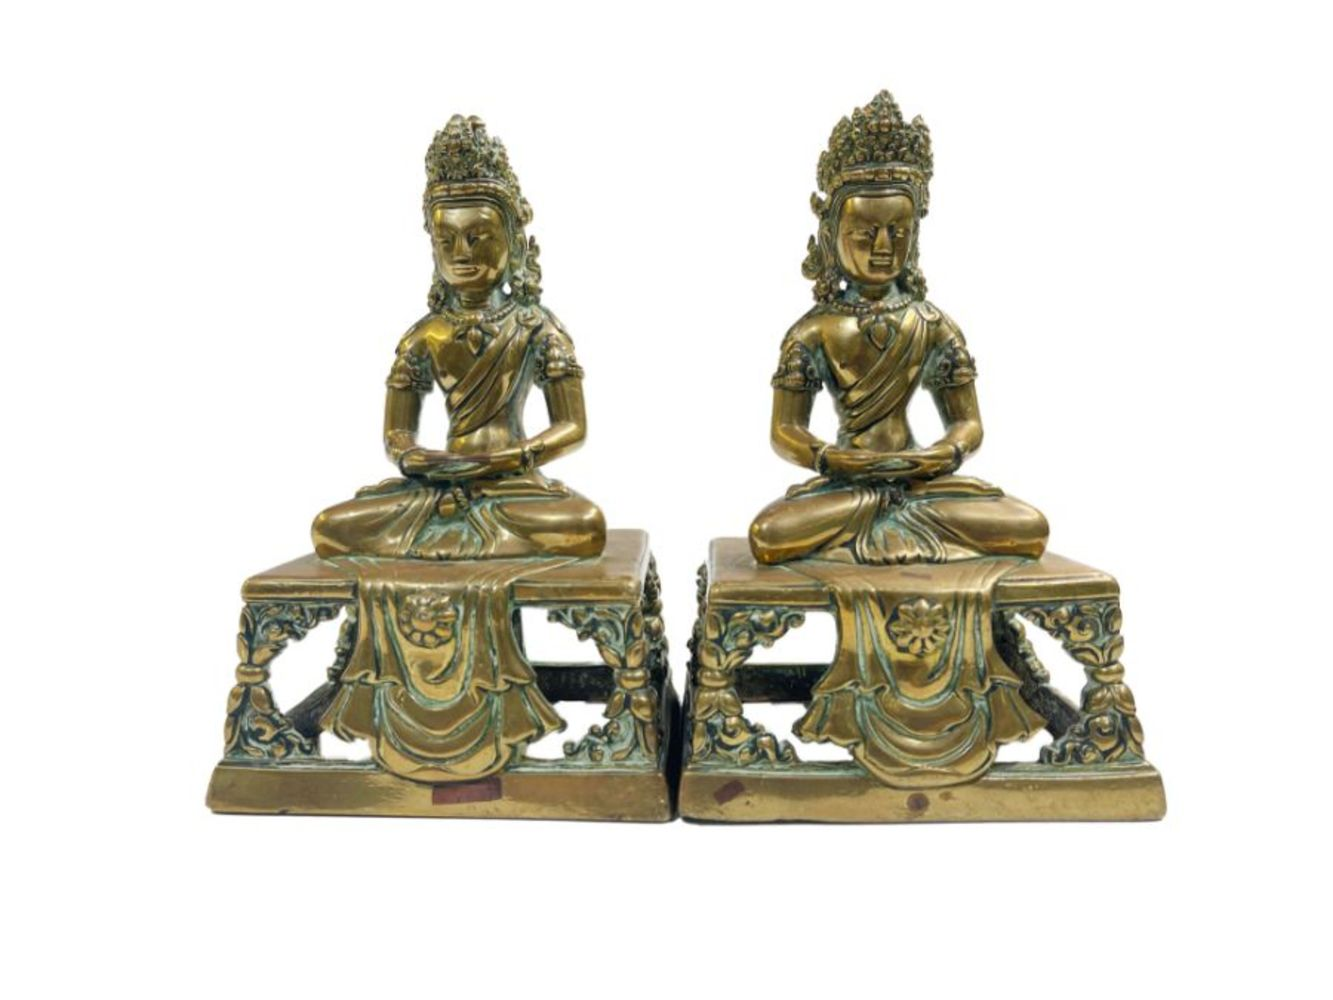 Collection Of Fine Asian Art Including A Gentleman's Asian Art Collection LOTS 1-150 - Plakas Auctions